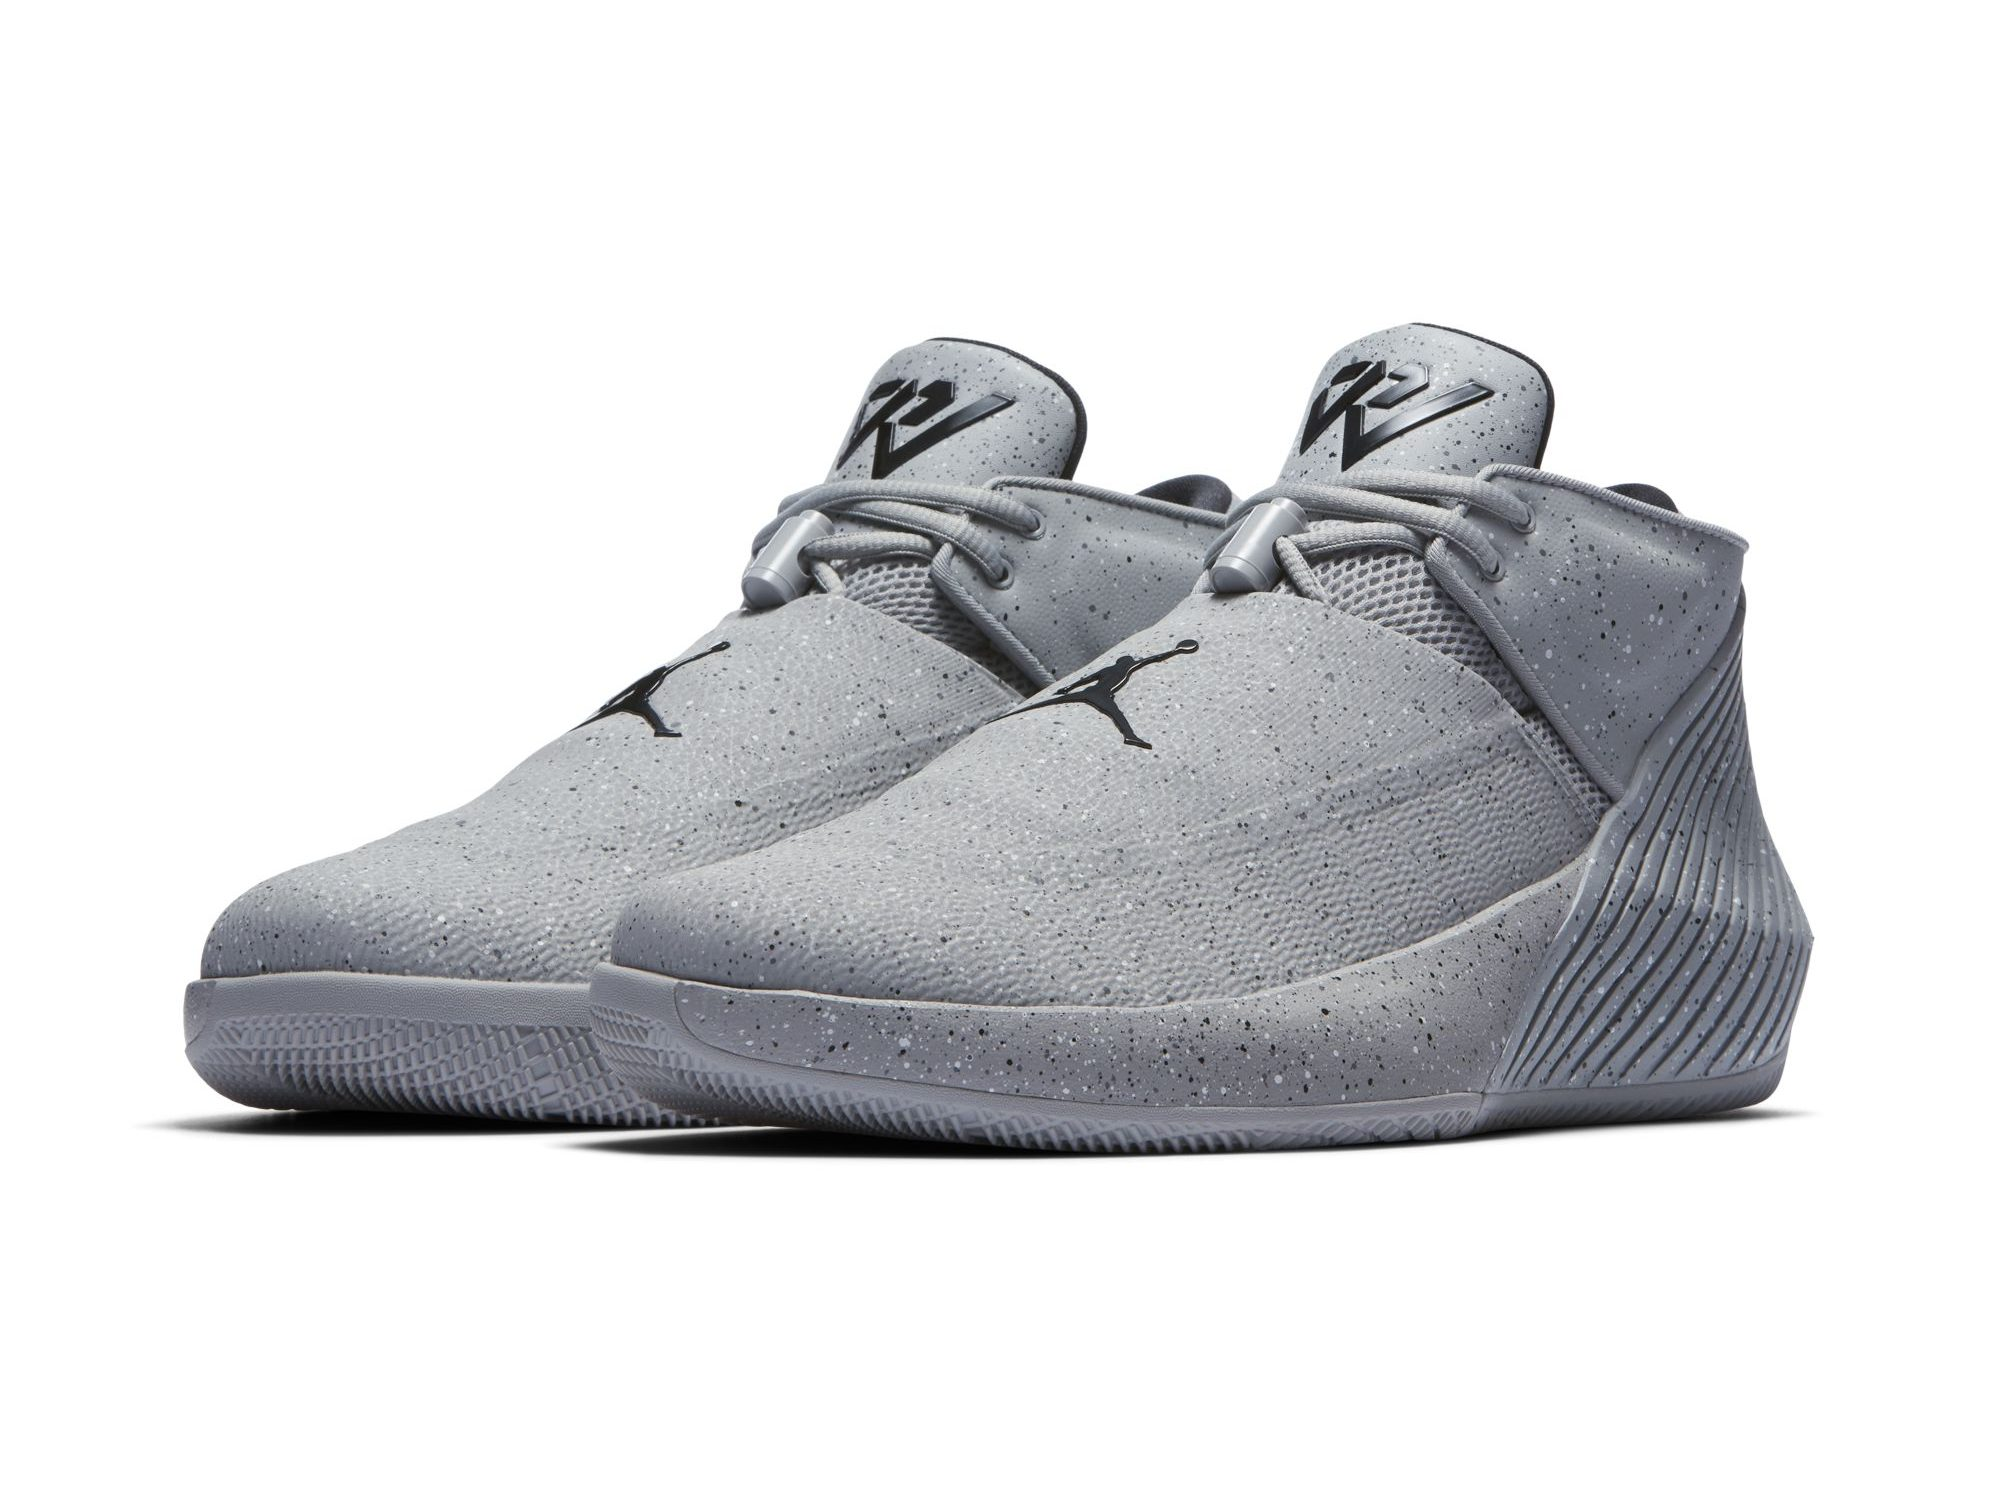 Air Jordan Why Not Zer0.1 Low Surfaces in the Stone Colorway 5